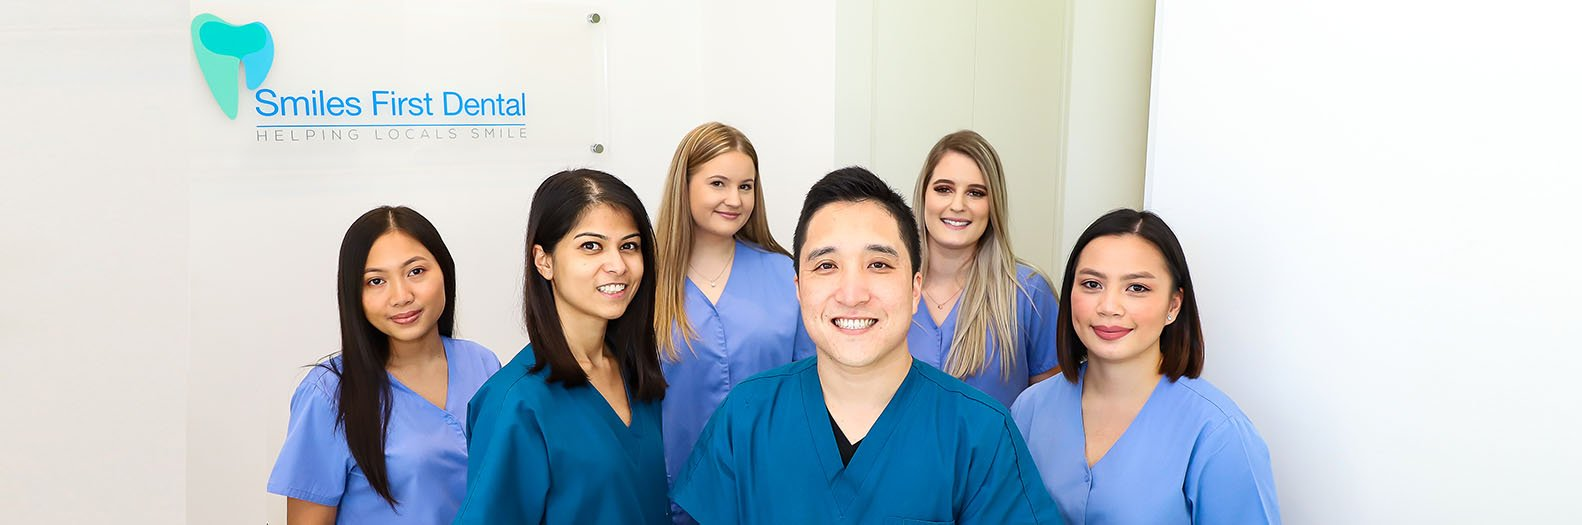 Sydney Road Dental Care